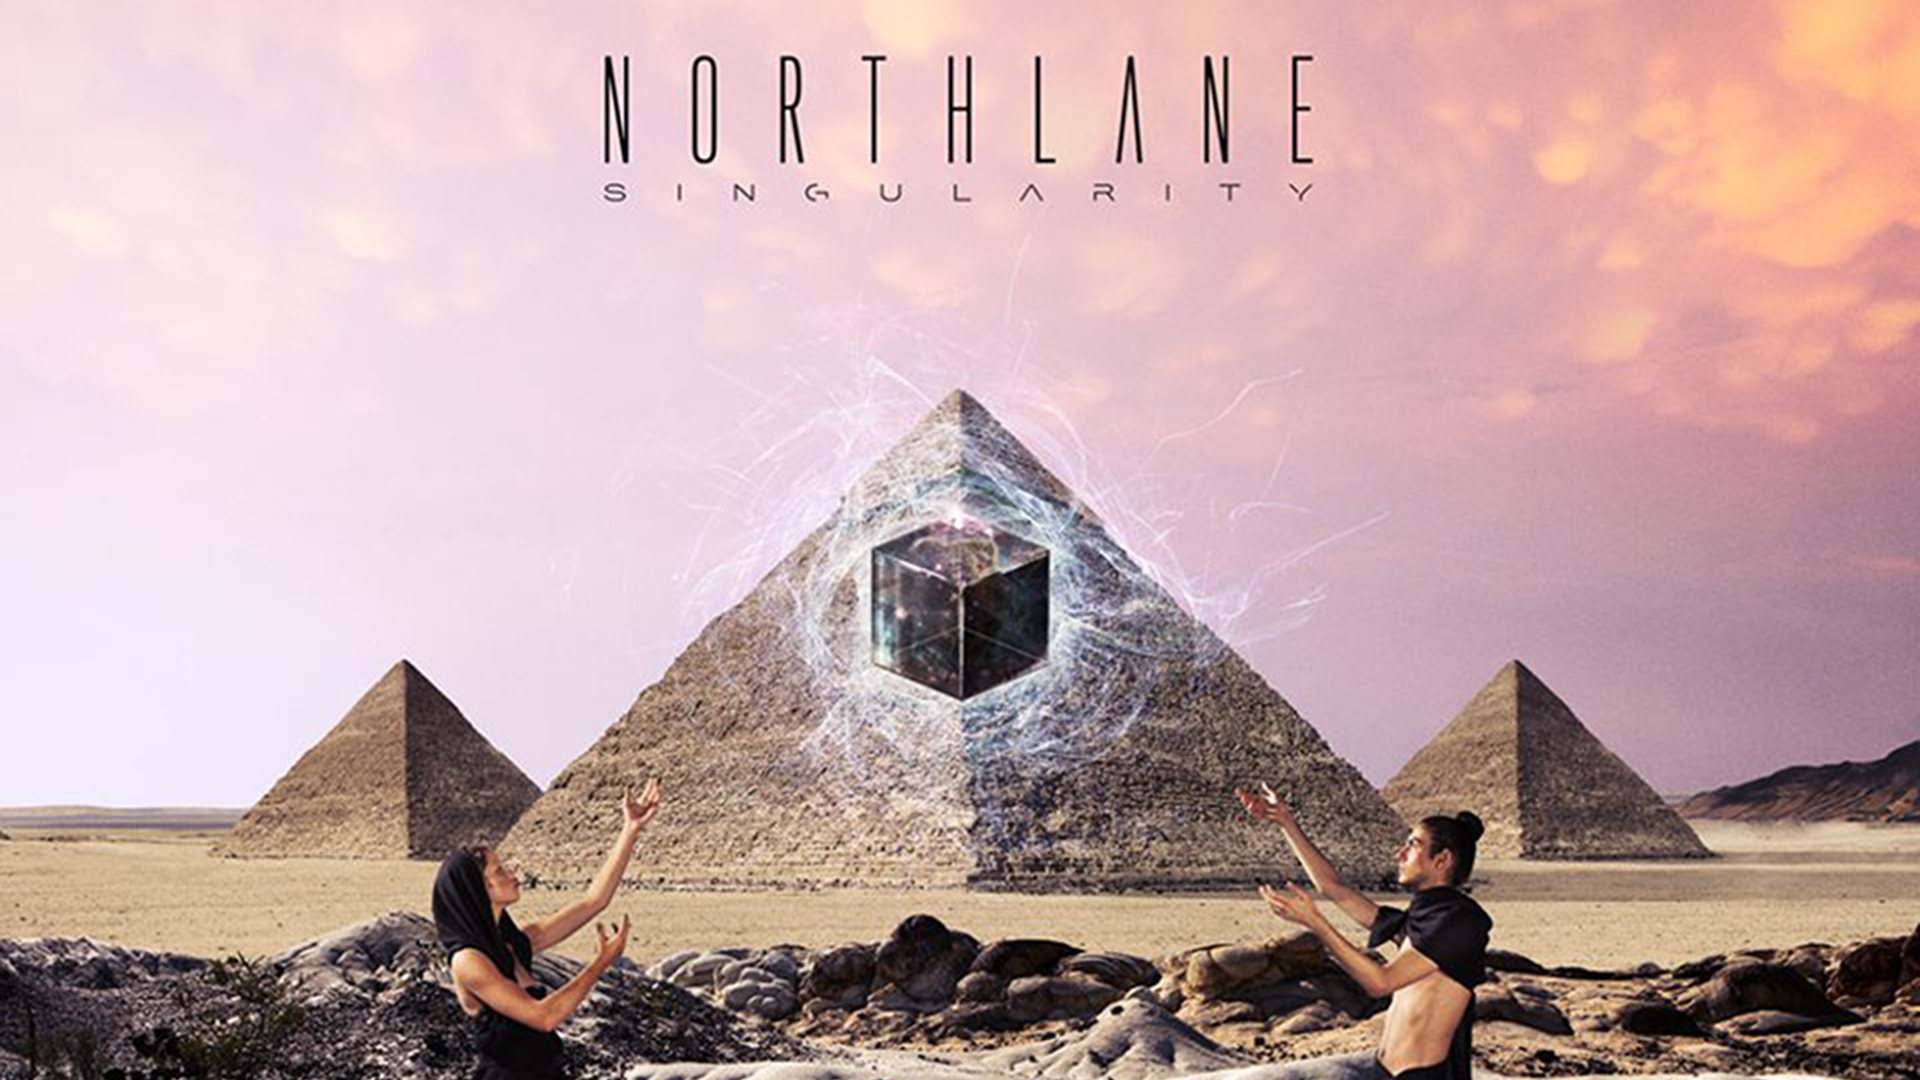 2 northlane  singularity hd wallpapers